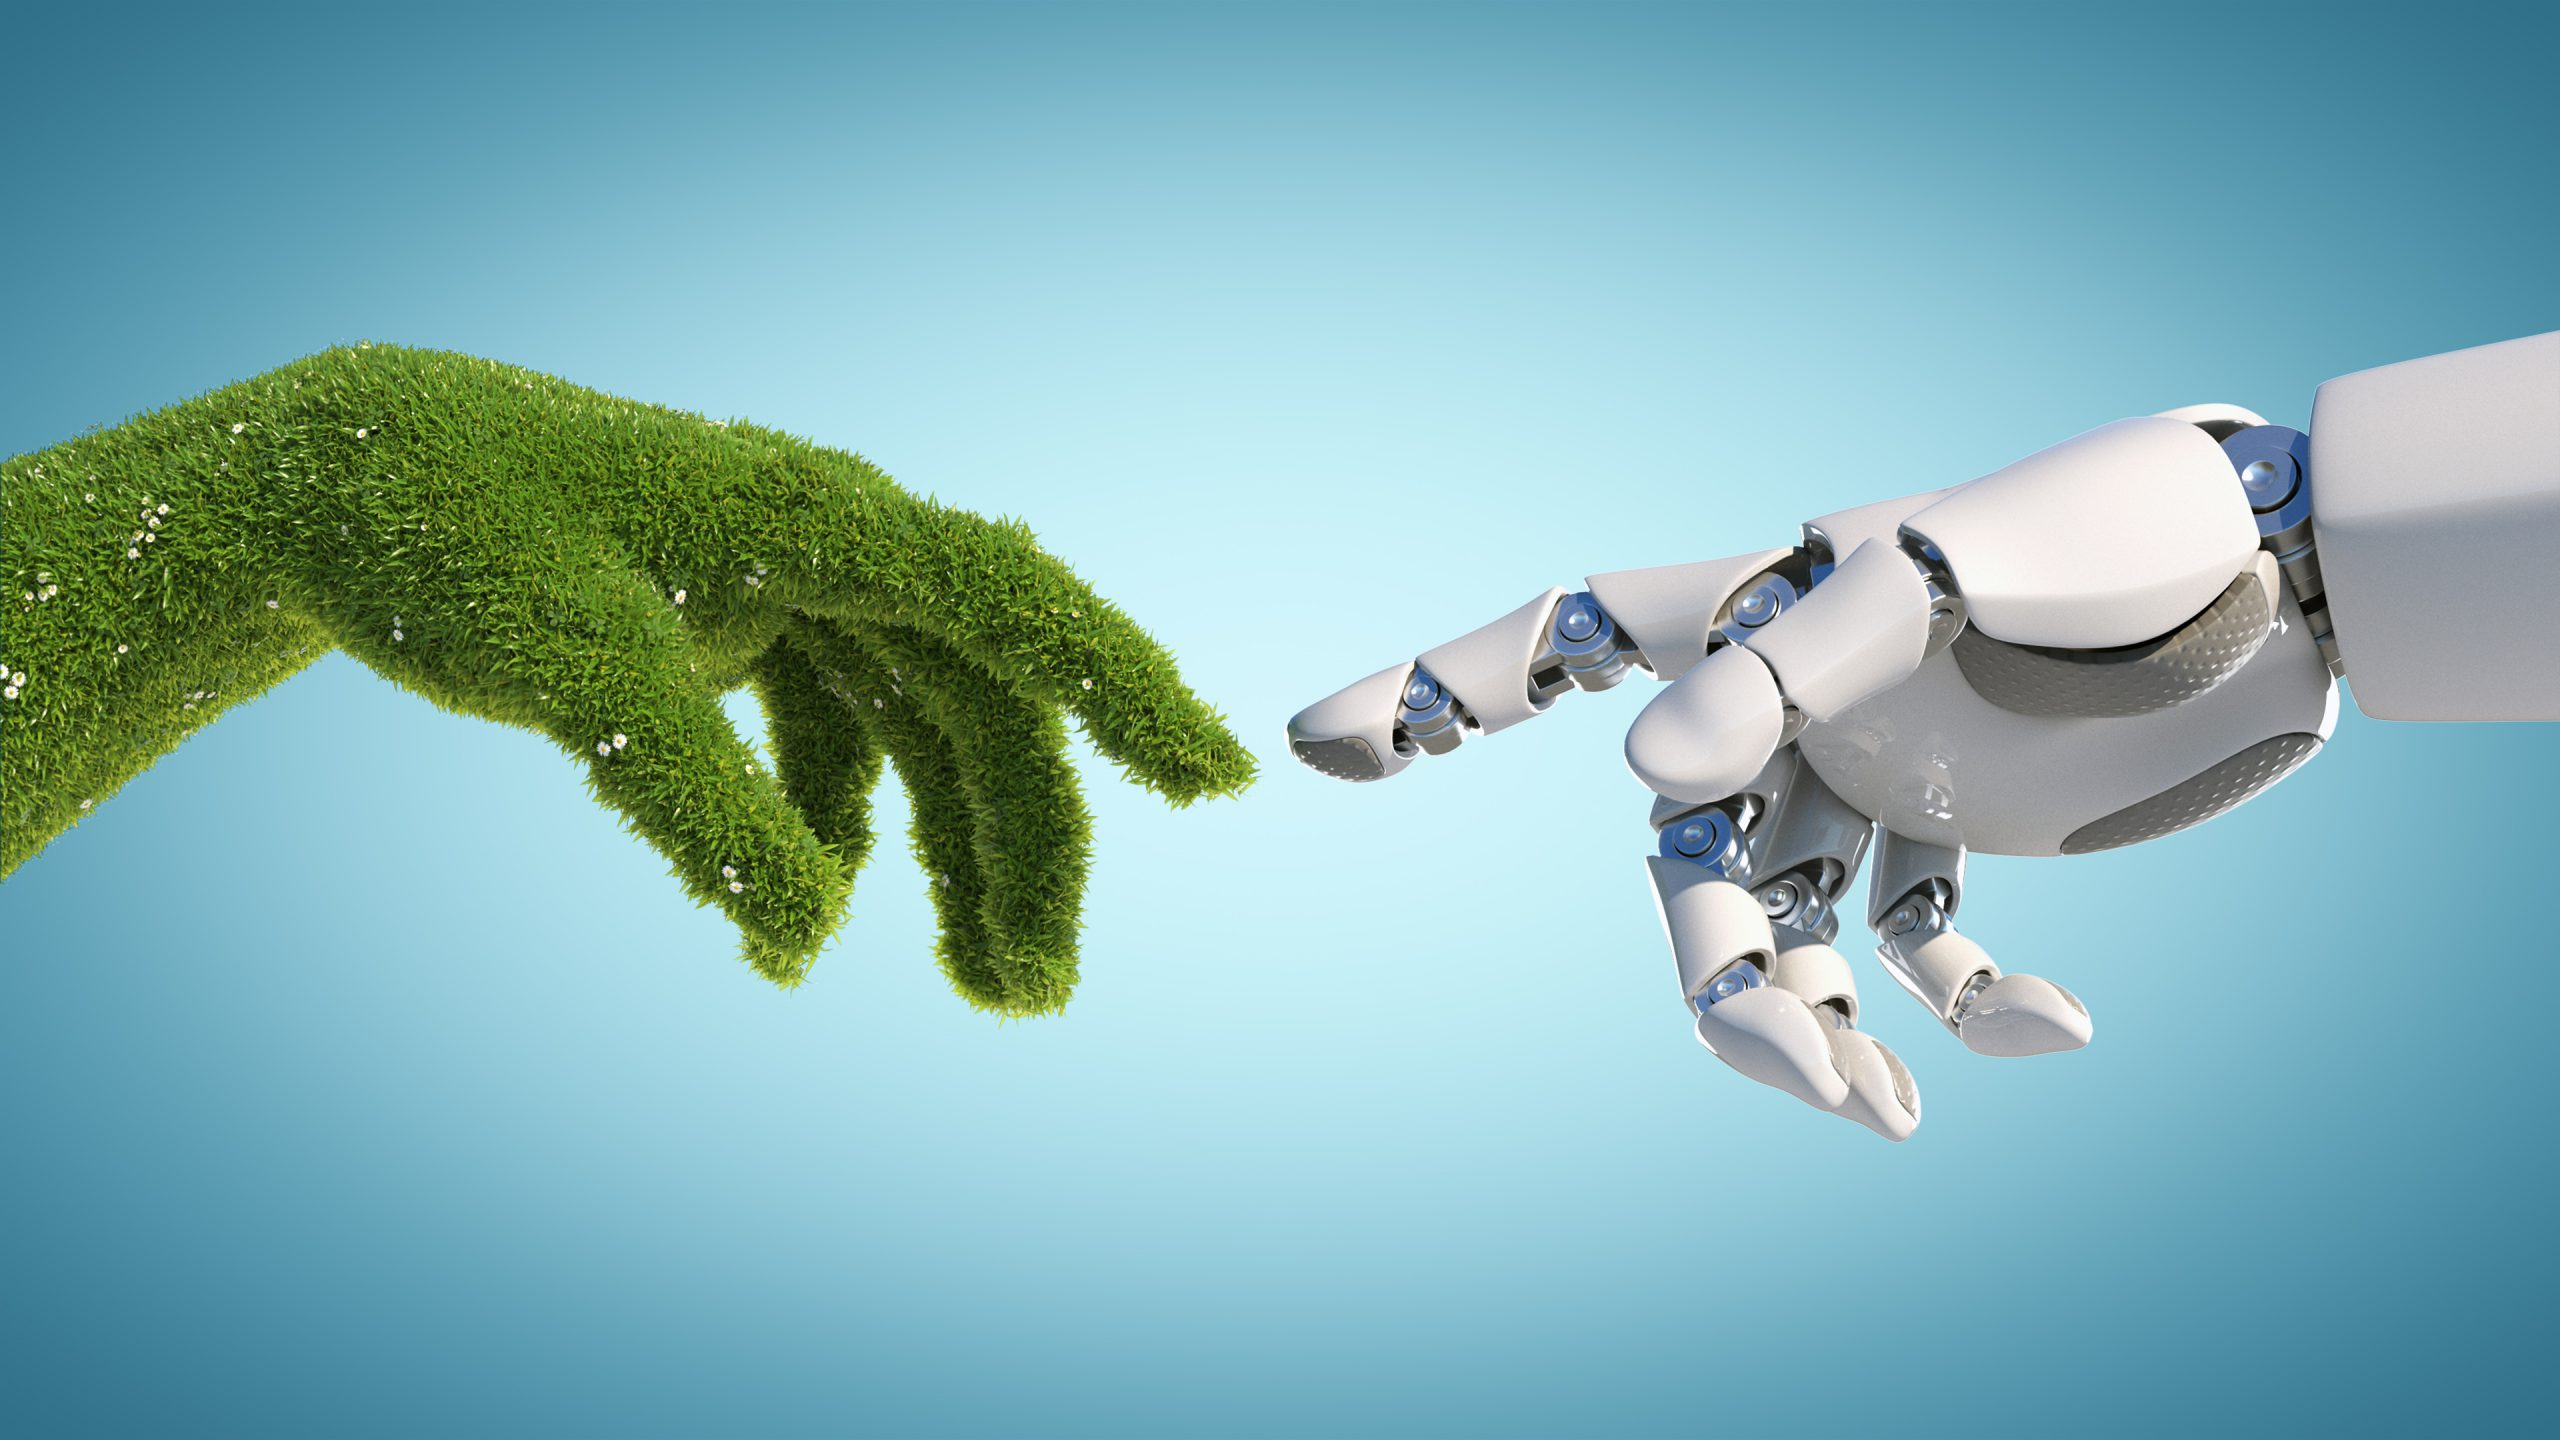 Nature and technology abstract concept, robot hand and natural hand covered with grass